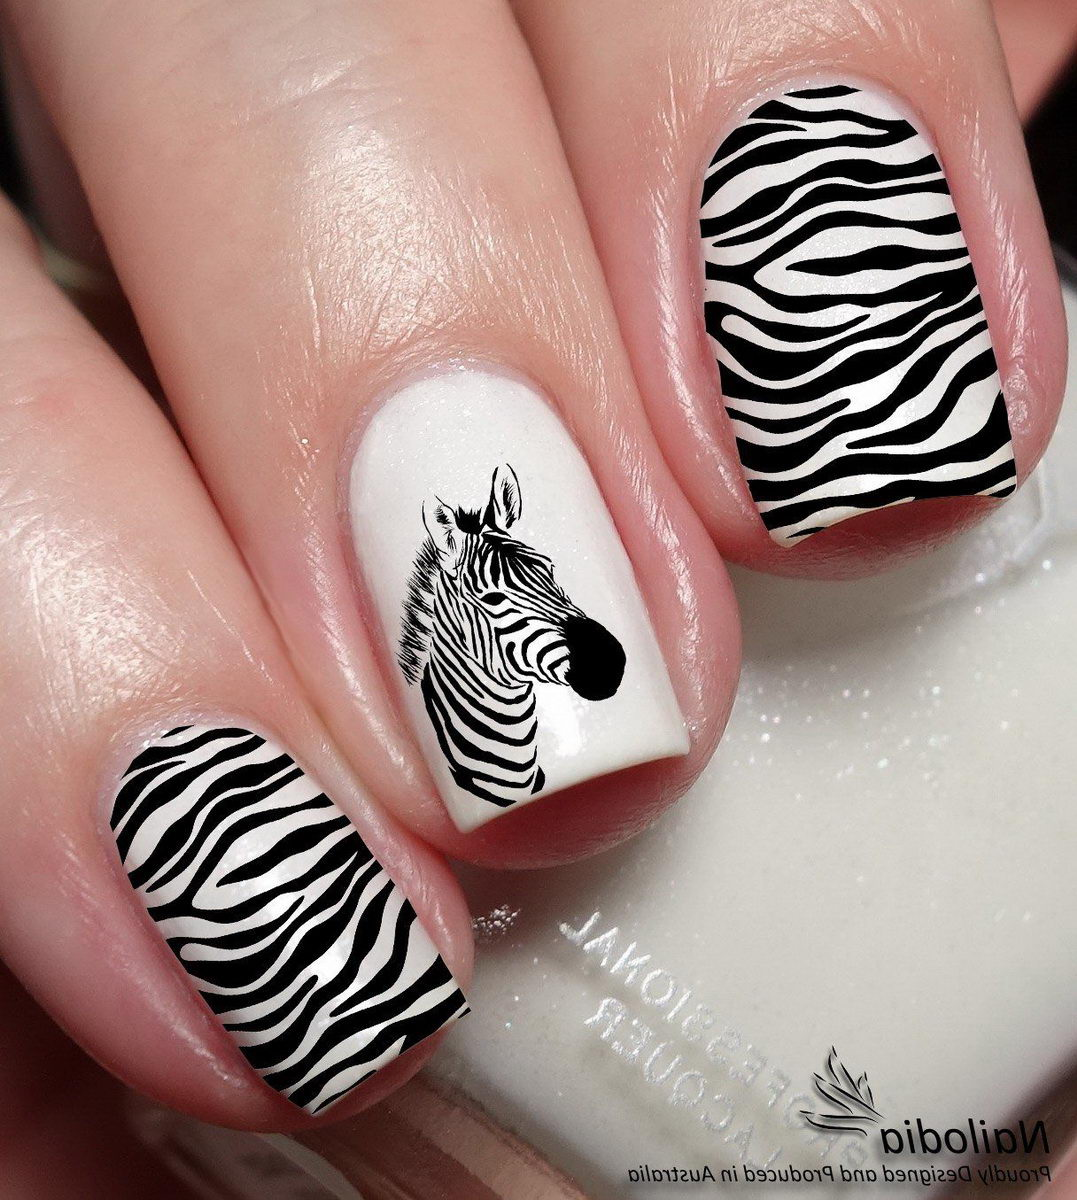 Zebra white and black nails